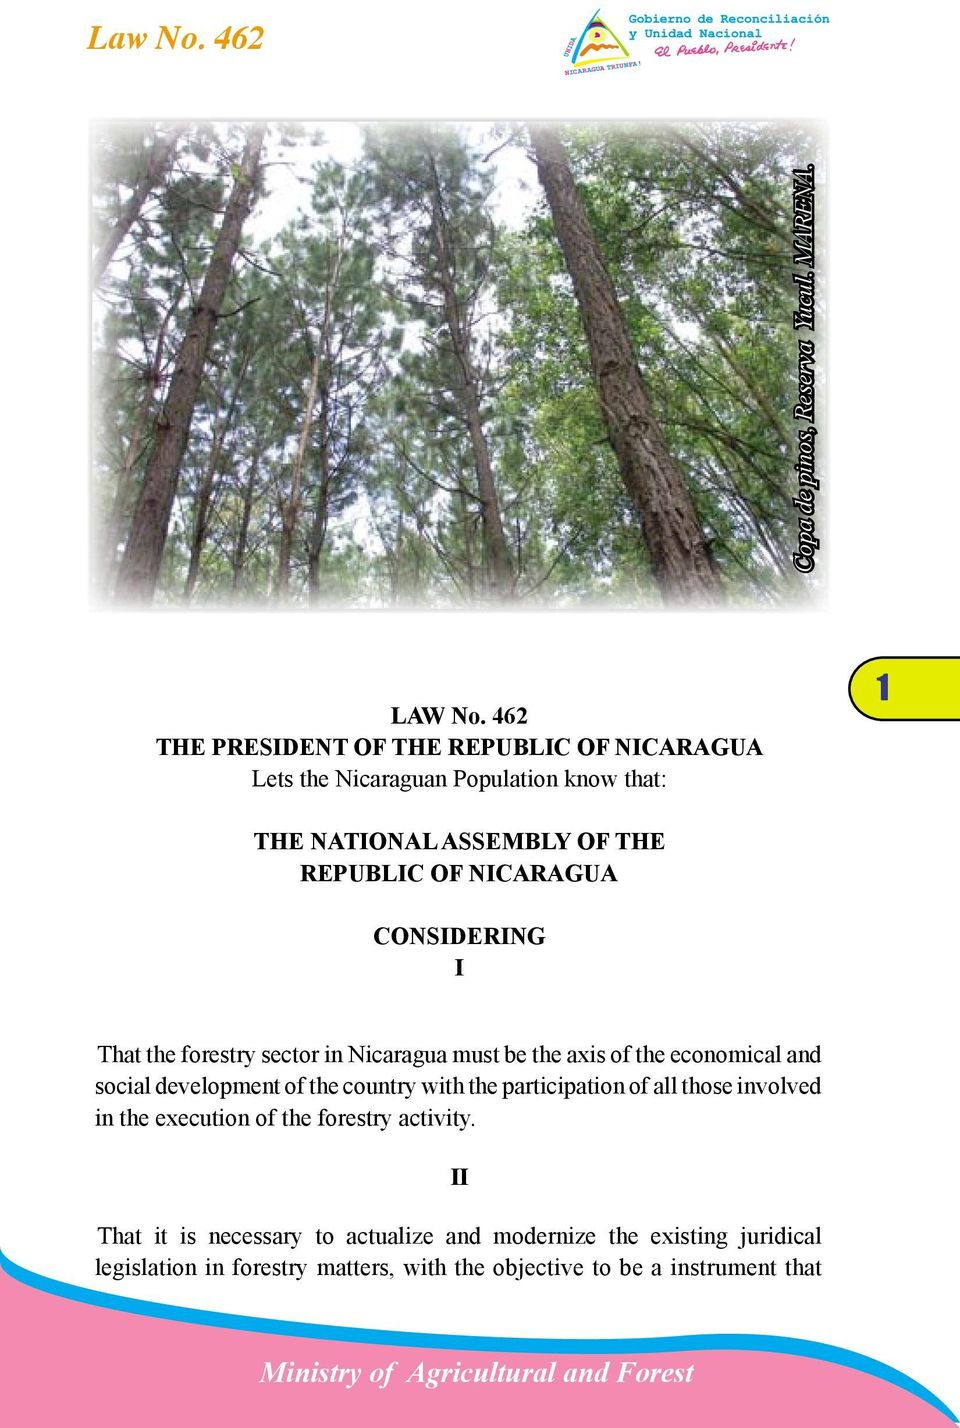 NICARAGUA CONSIDERING I That the forestry sector in Nicaragua must be the axis of the economical and social development of the country